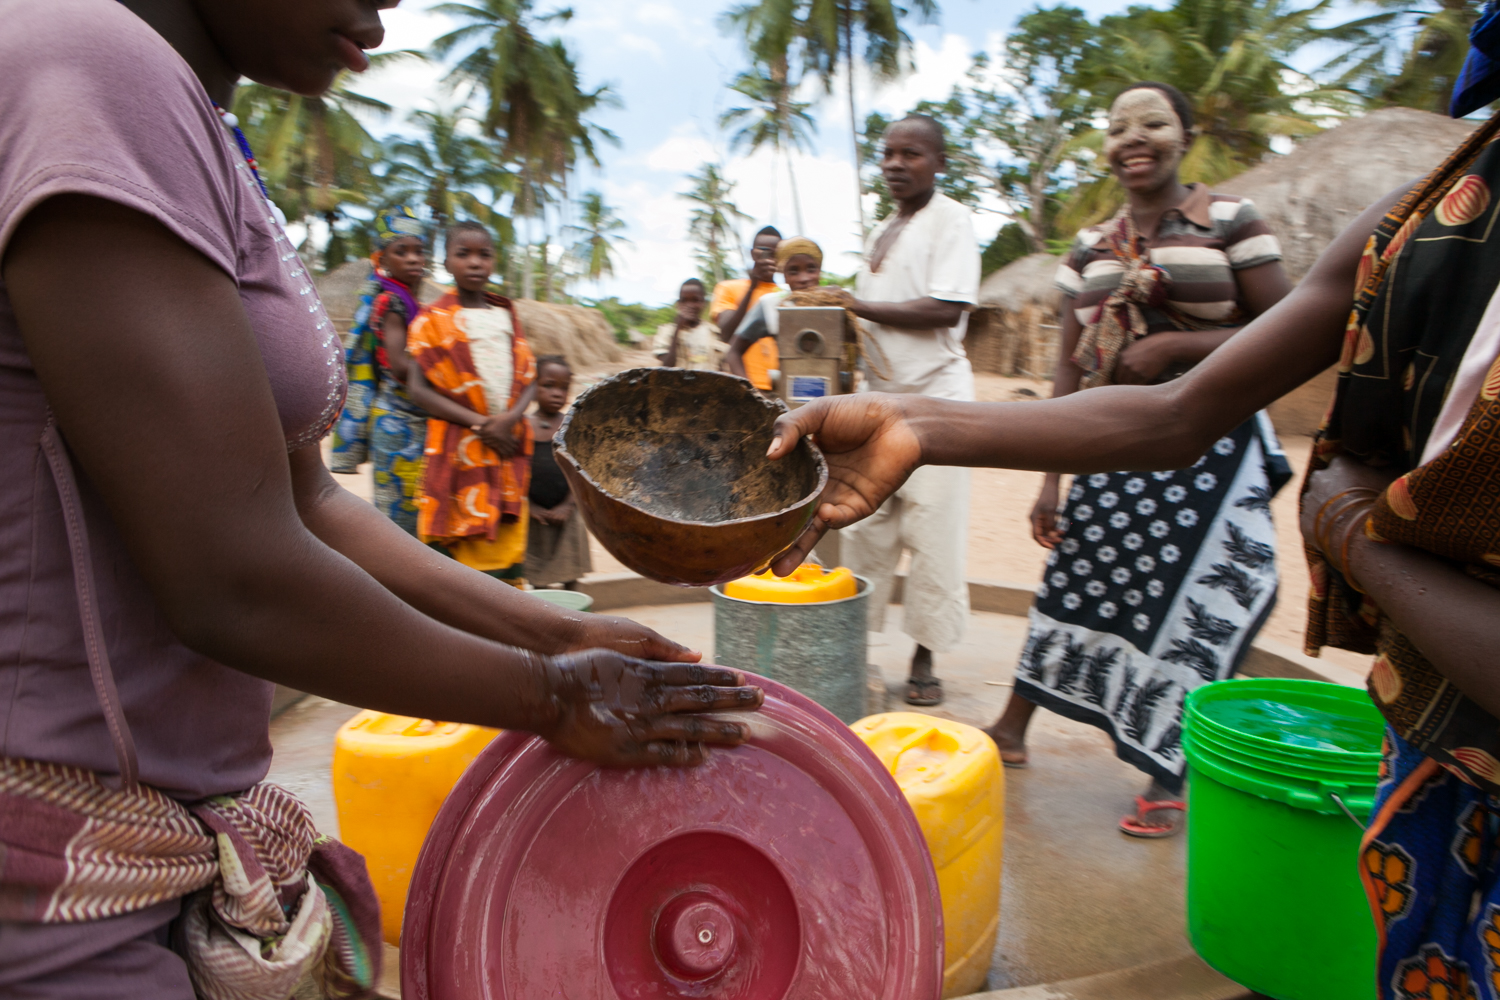 After pump repairs are complete, residents bring their colorful buckets and collect water. They oftentimes utilize a coconut shell for distributing water between buckets and washing their hands.